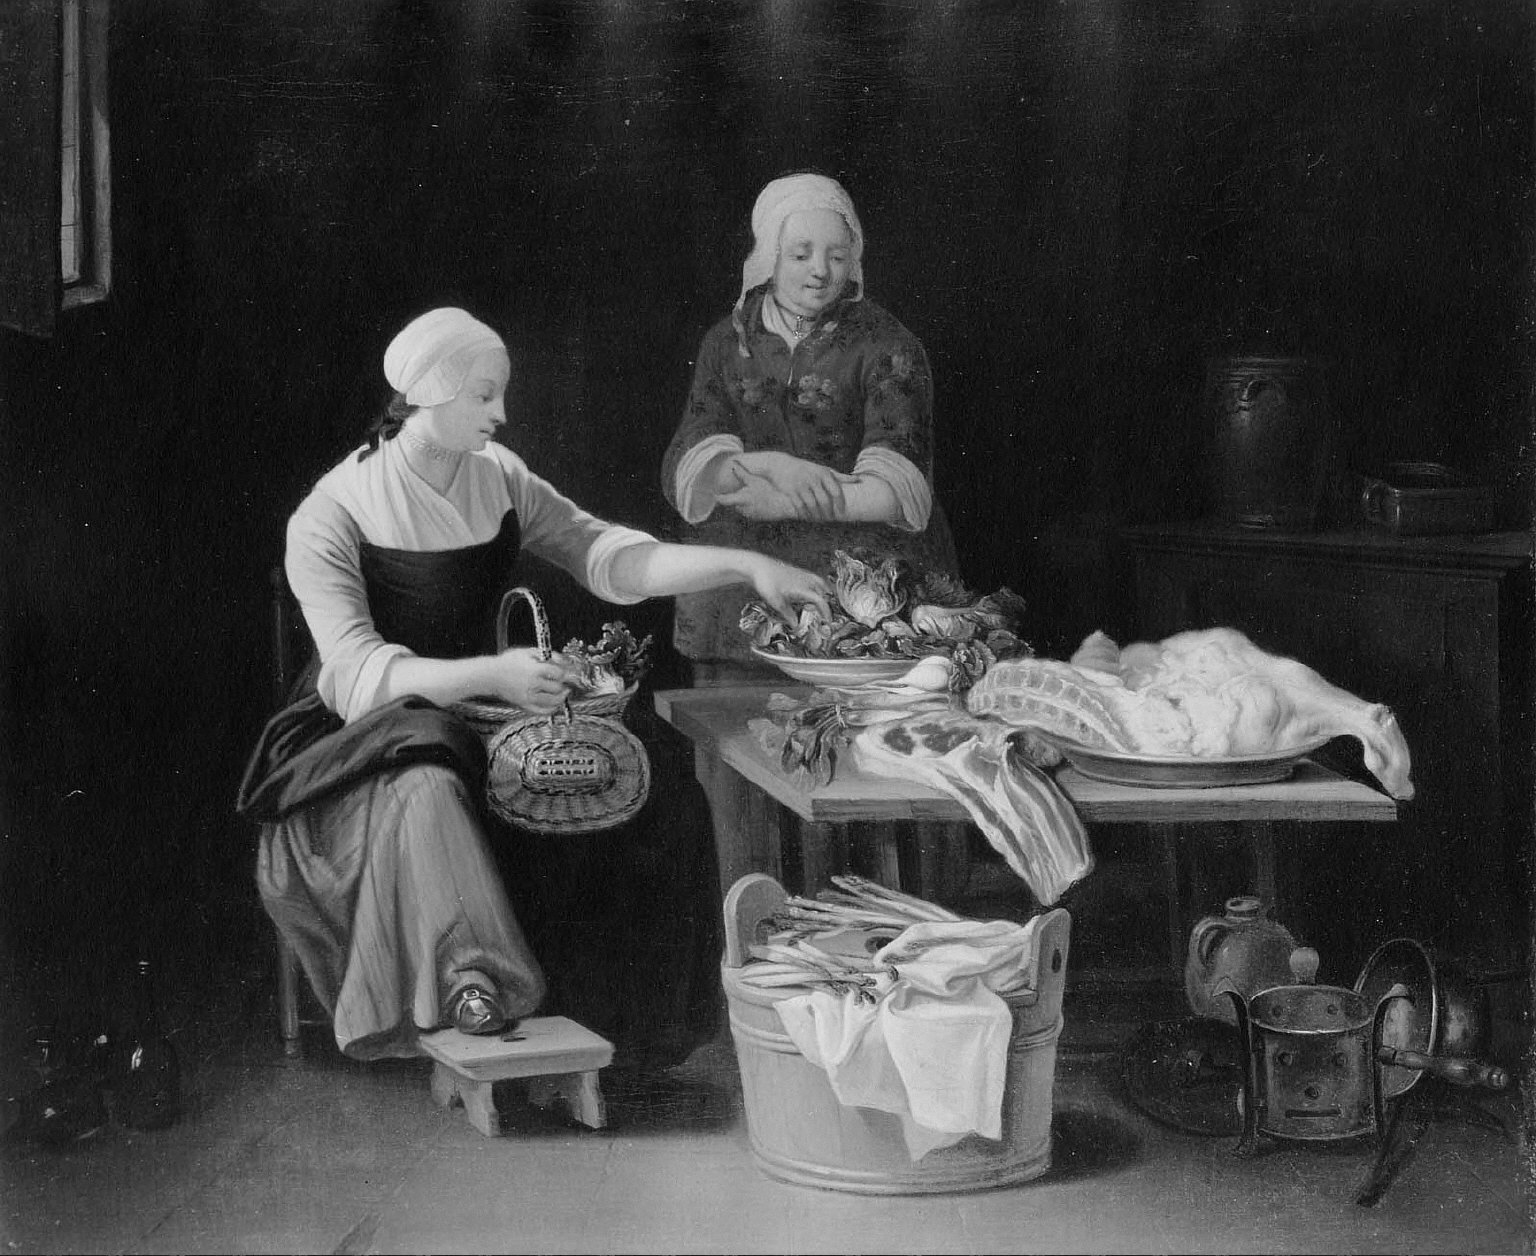 Two Women in a Kitchen